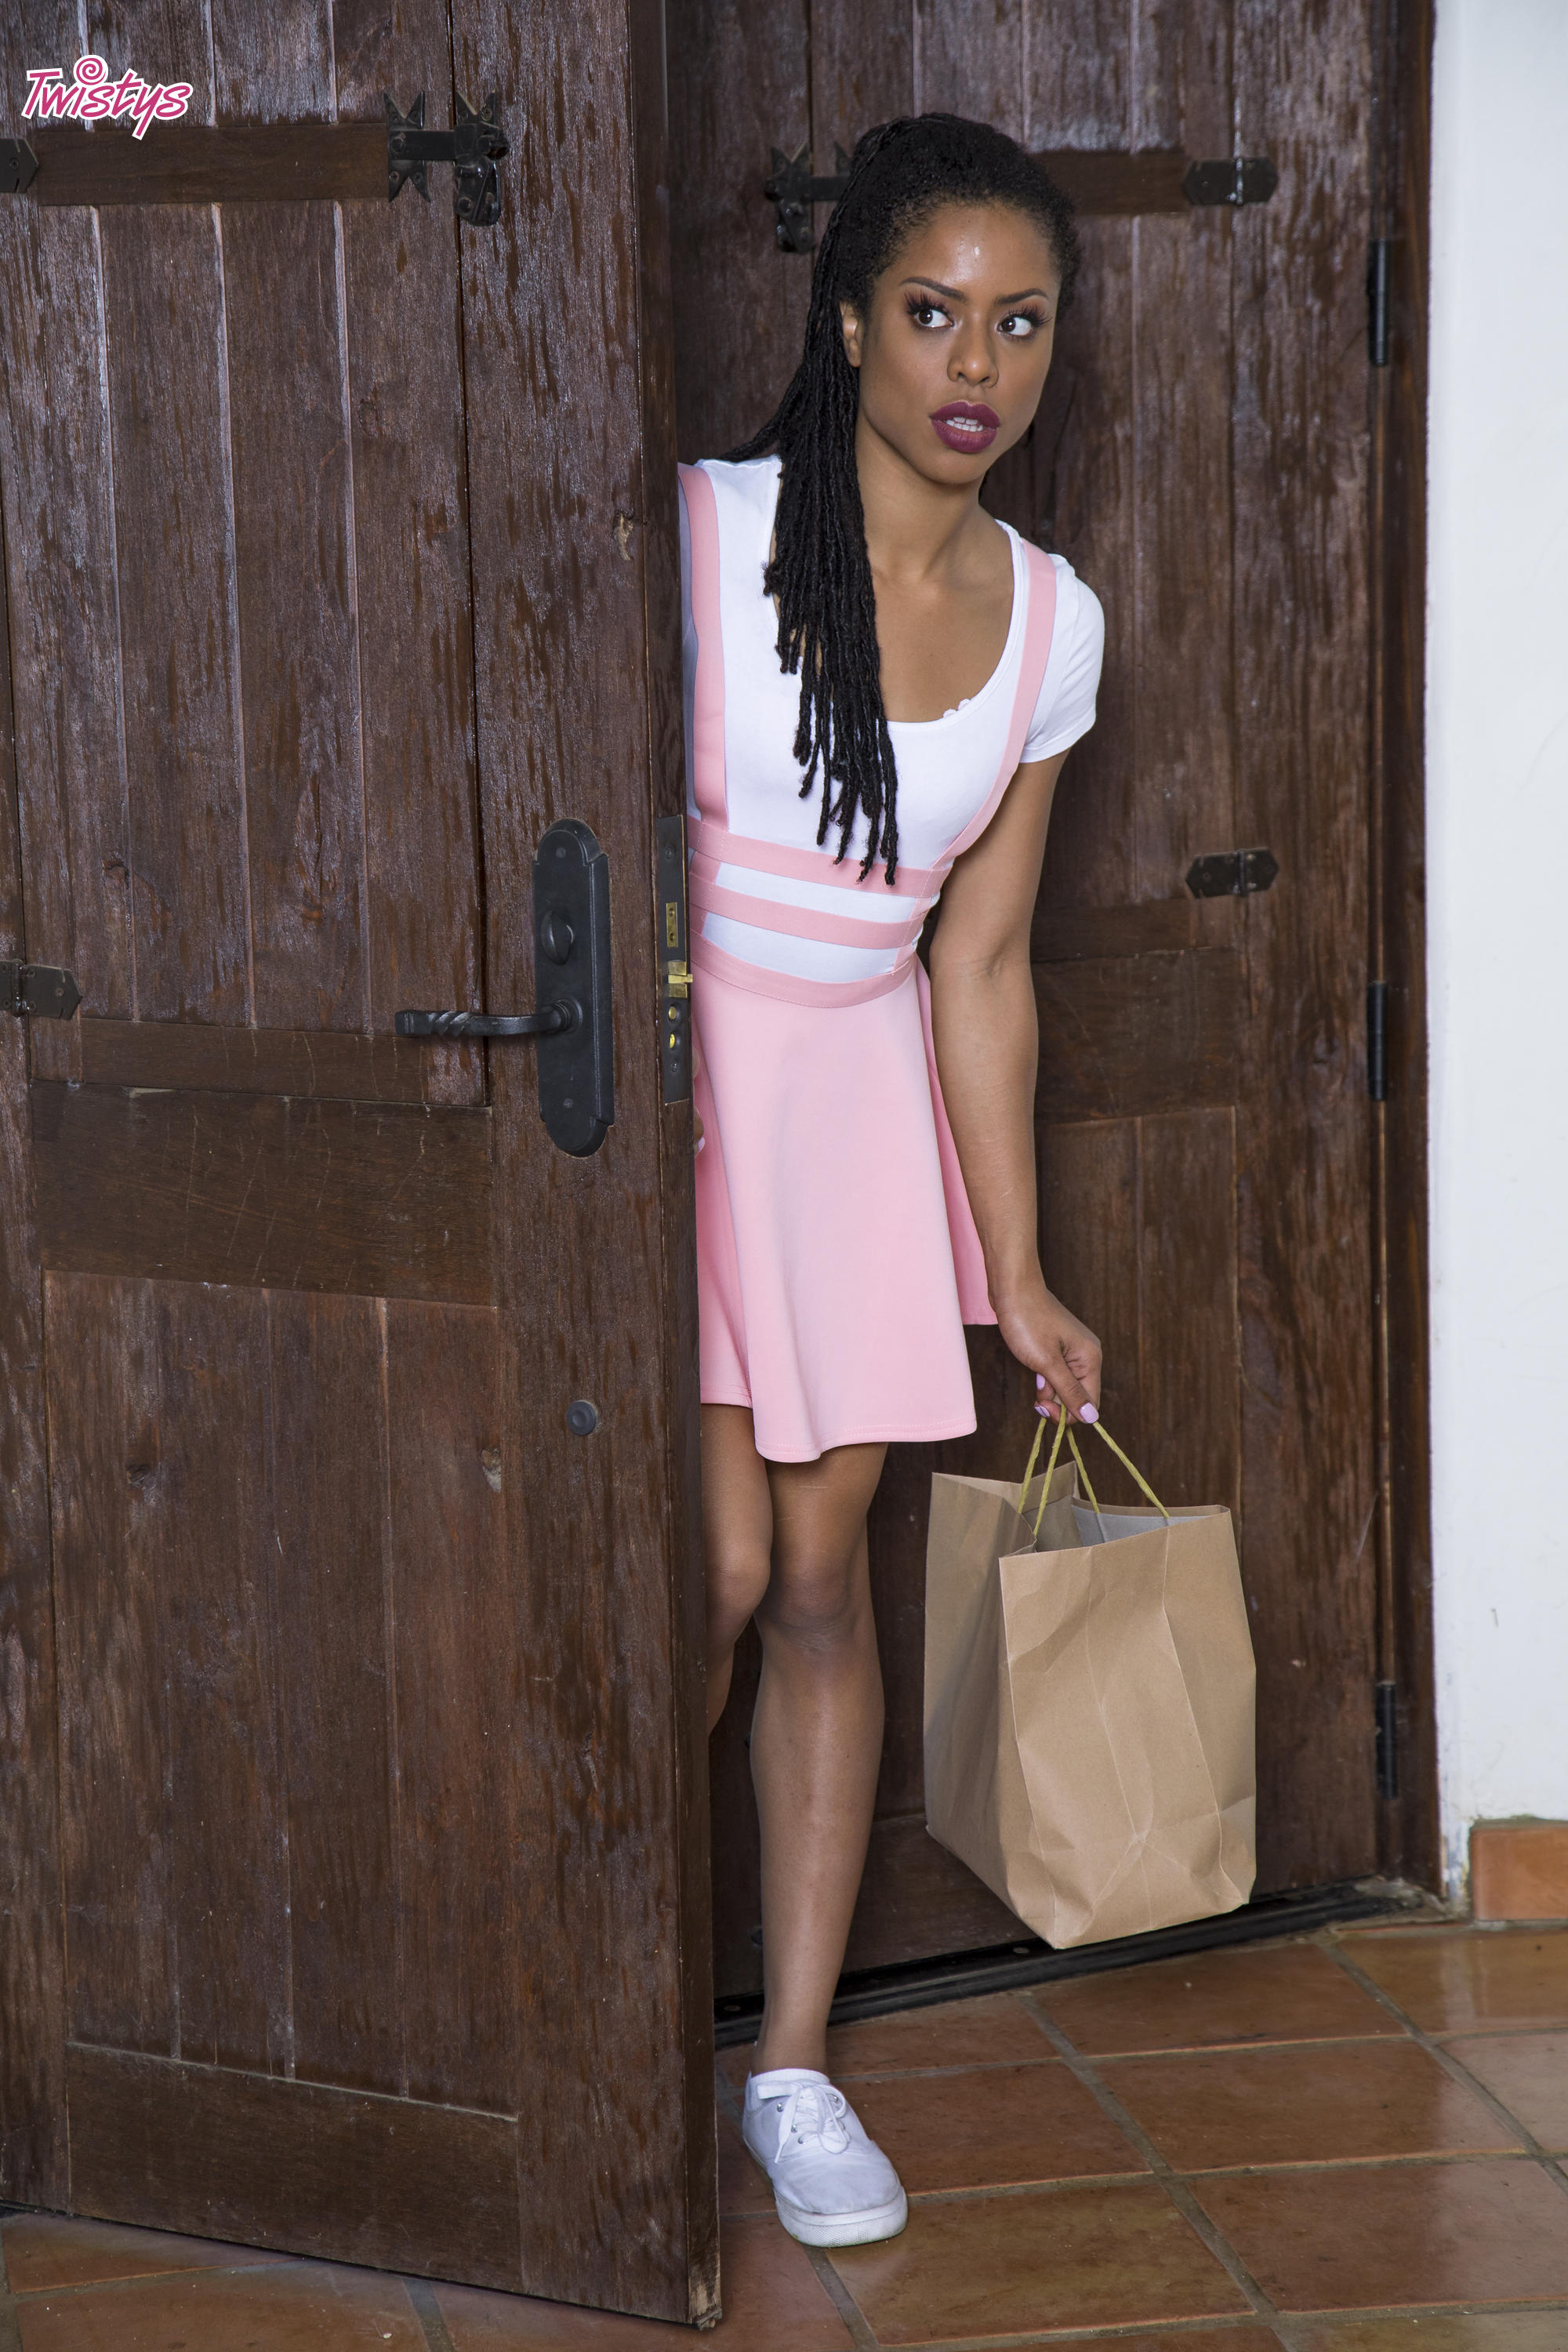 Twistys 'Another Kind of Party' starring Kira Noir (Photo 6)